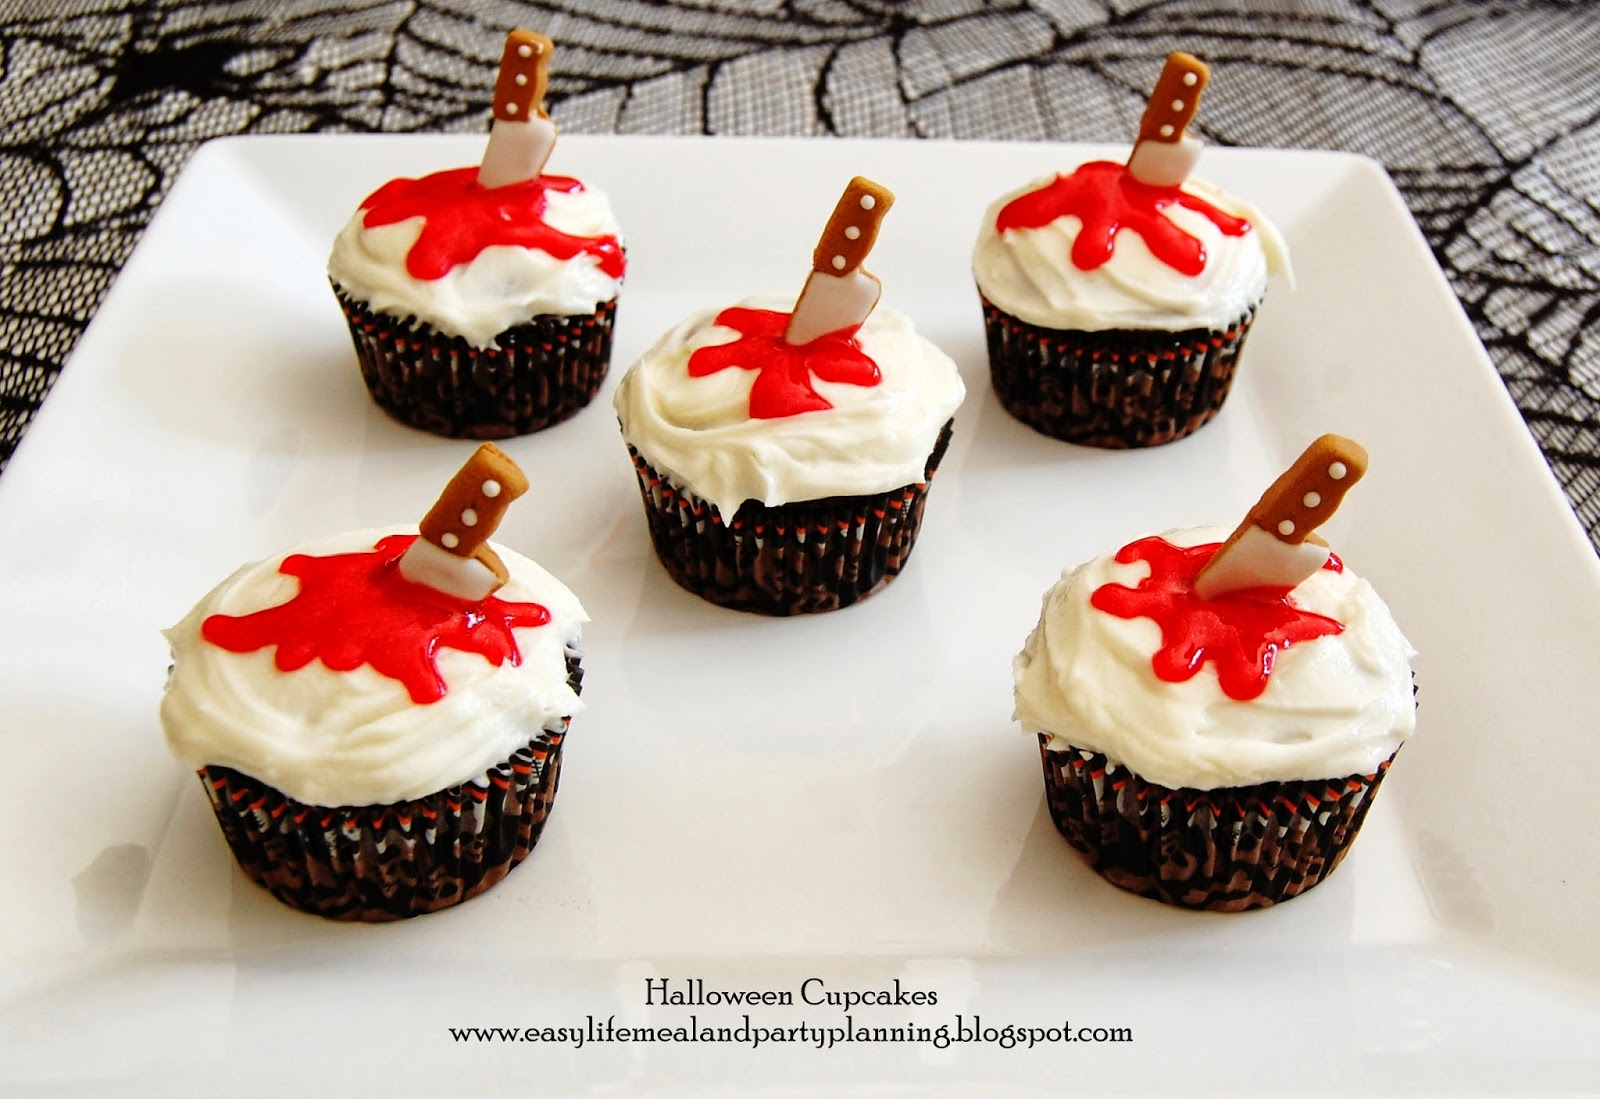 halloween cupcake recipes recipes for halloween cupcakes cookies punch cakes with pictures party food jello shots cake party deviled eggs photos